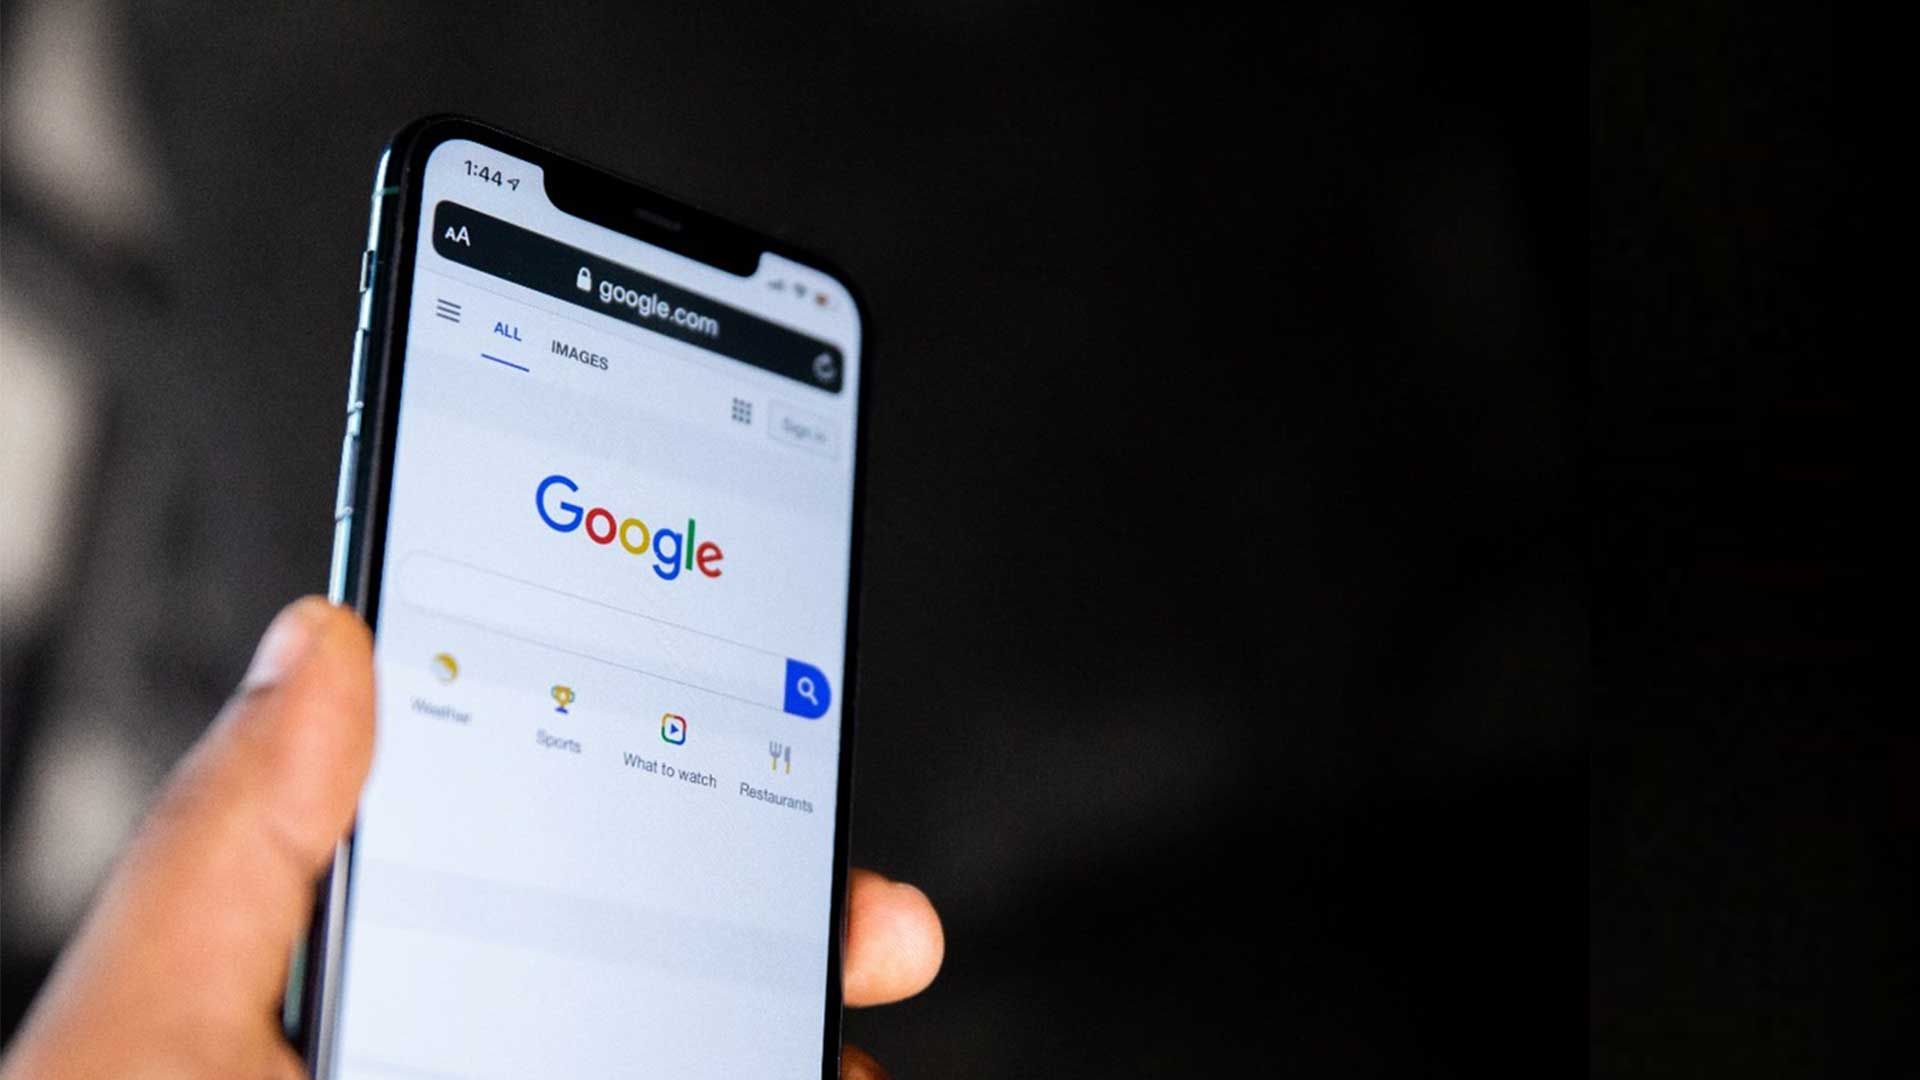 A person holding up a phone with the Google homepage on it.